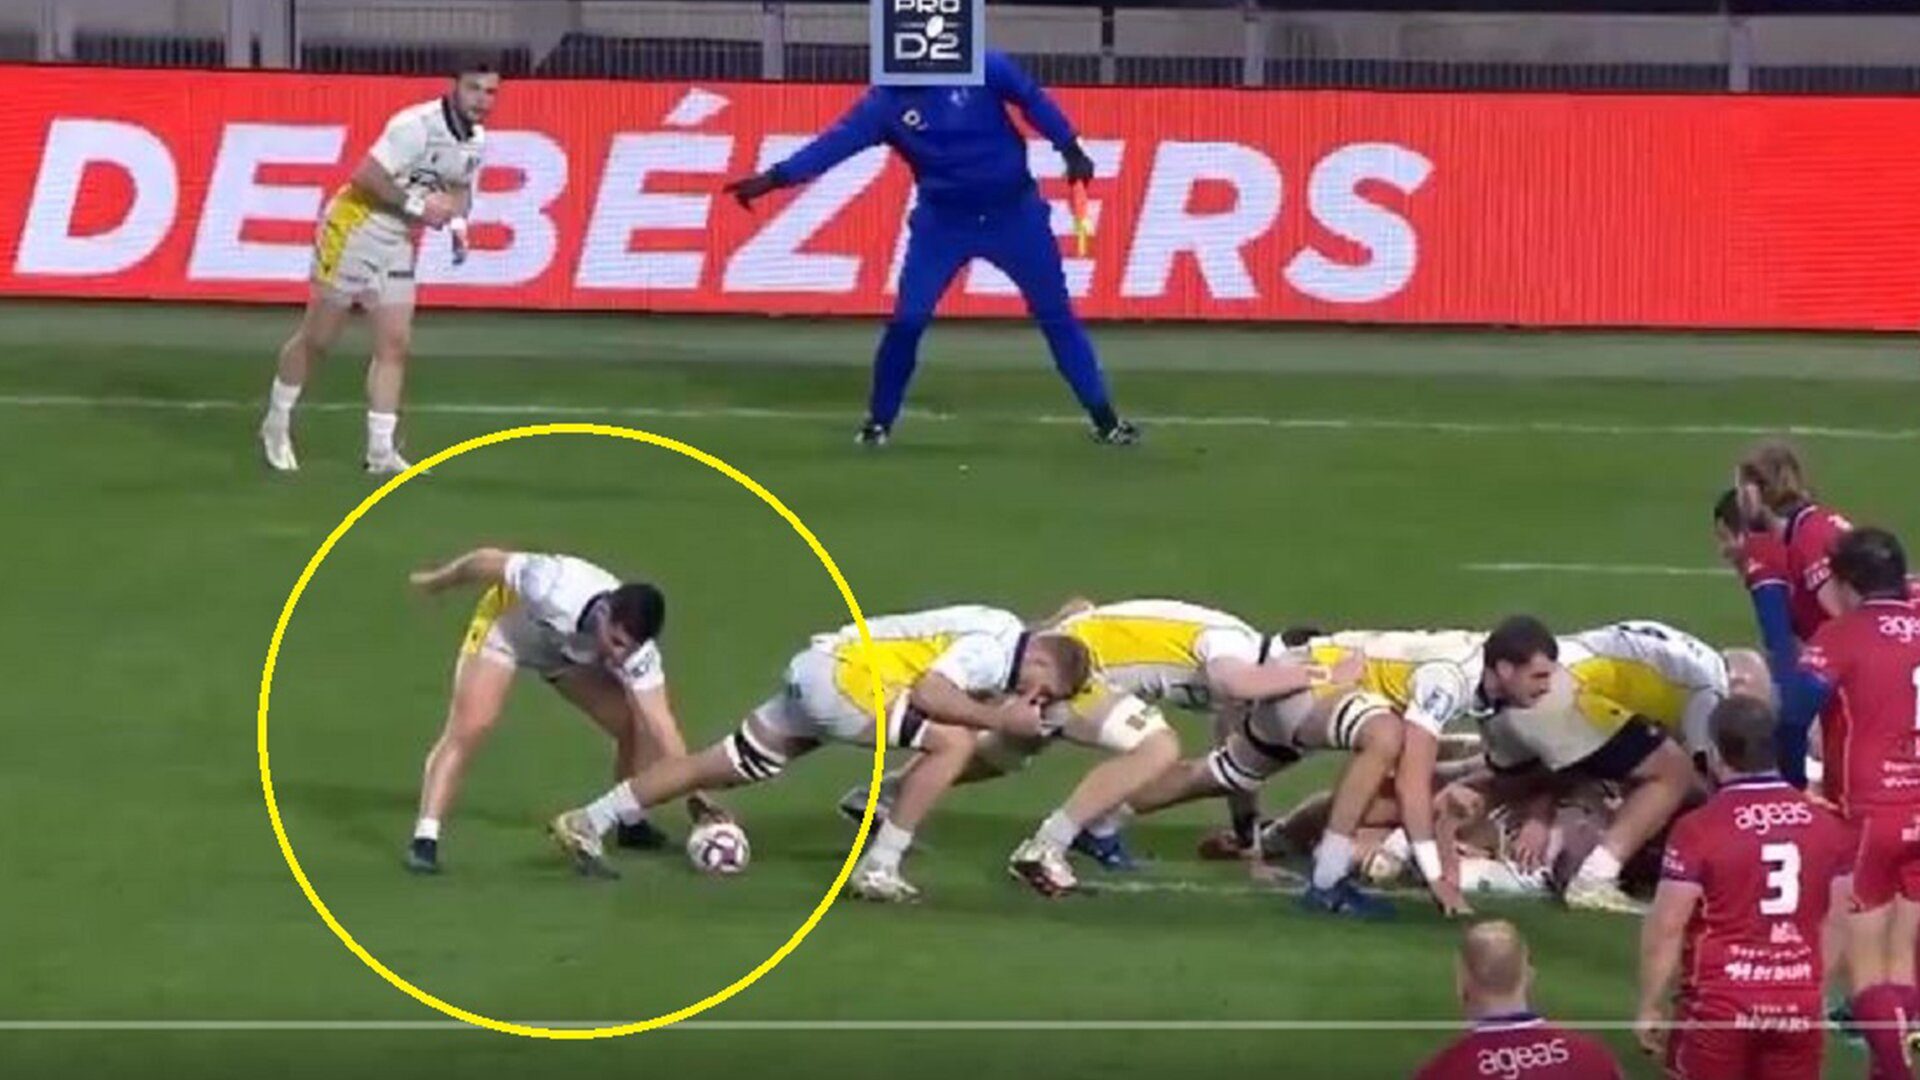 Caterpillar rucking technique backfires horribly in the ProD2